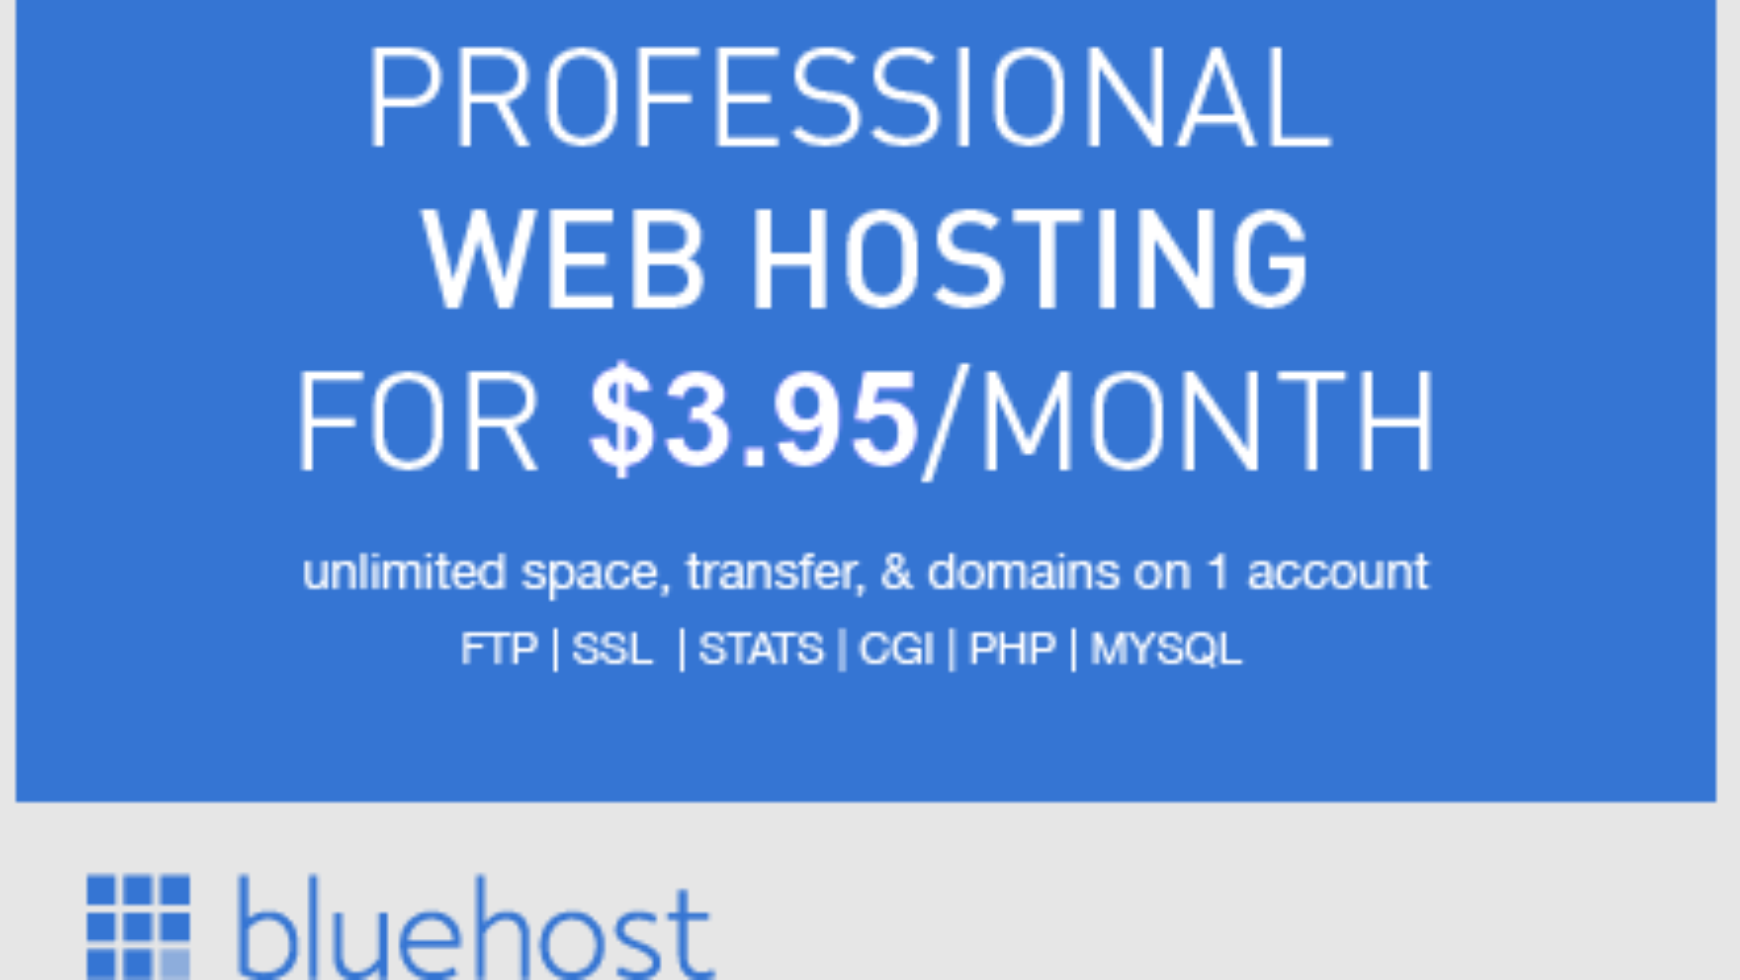 Top Hosting Companies for Contractors